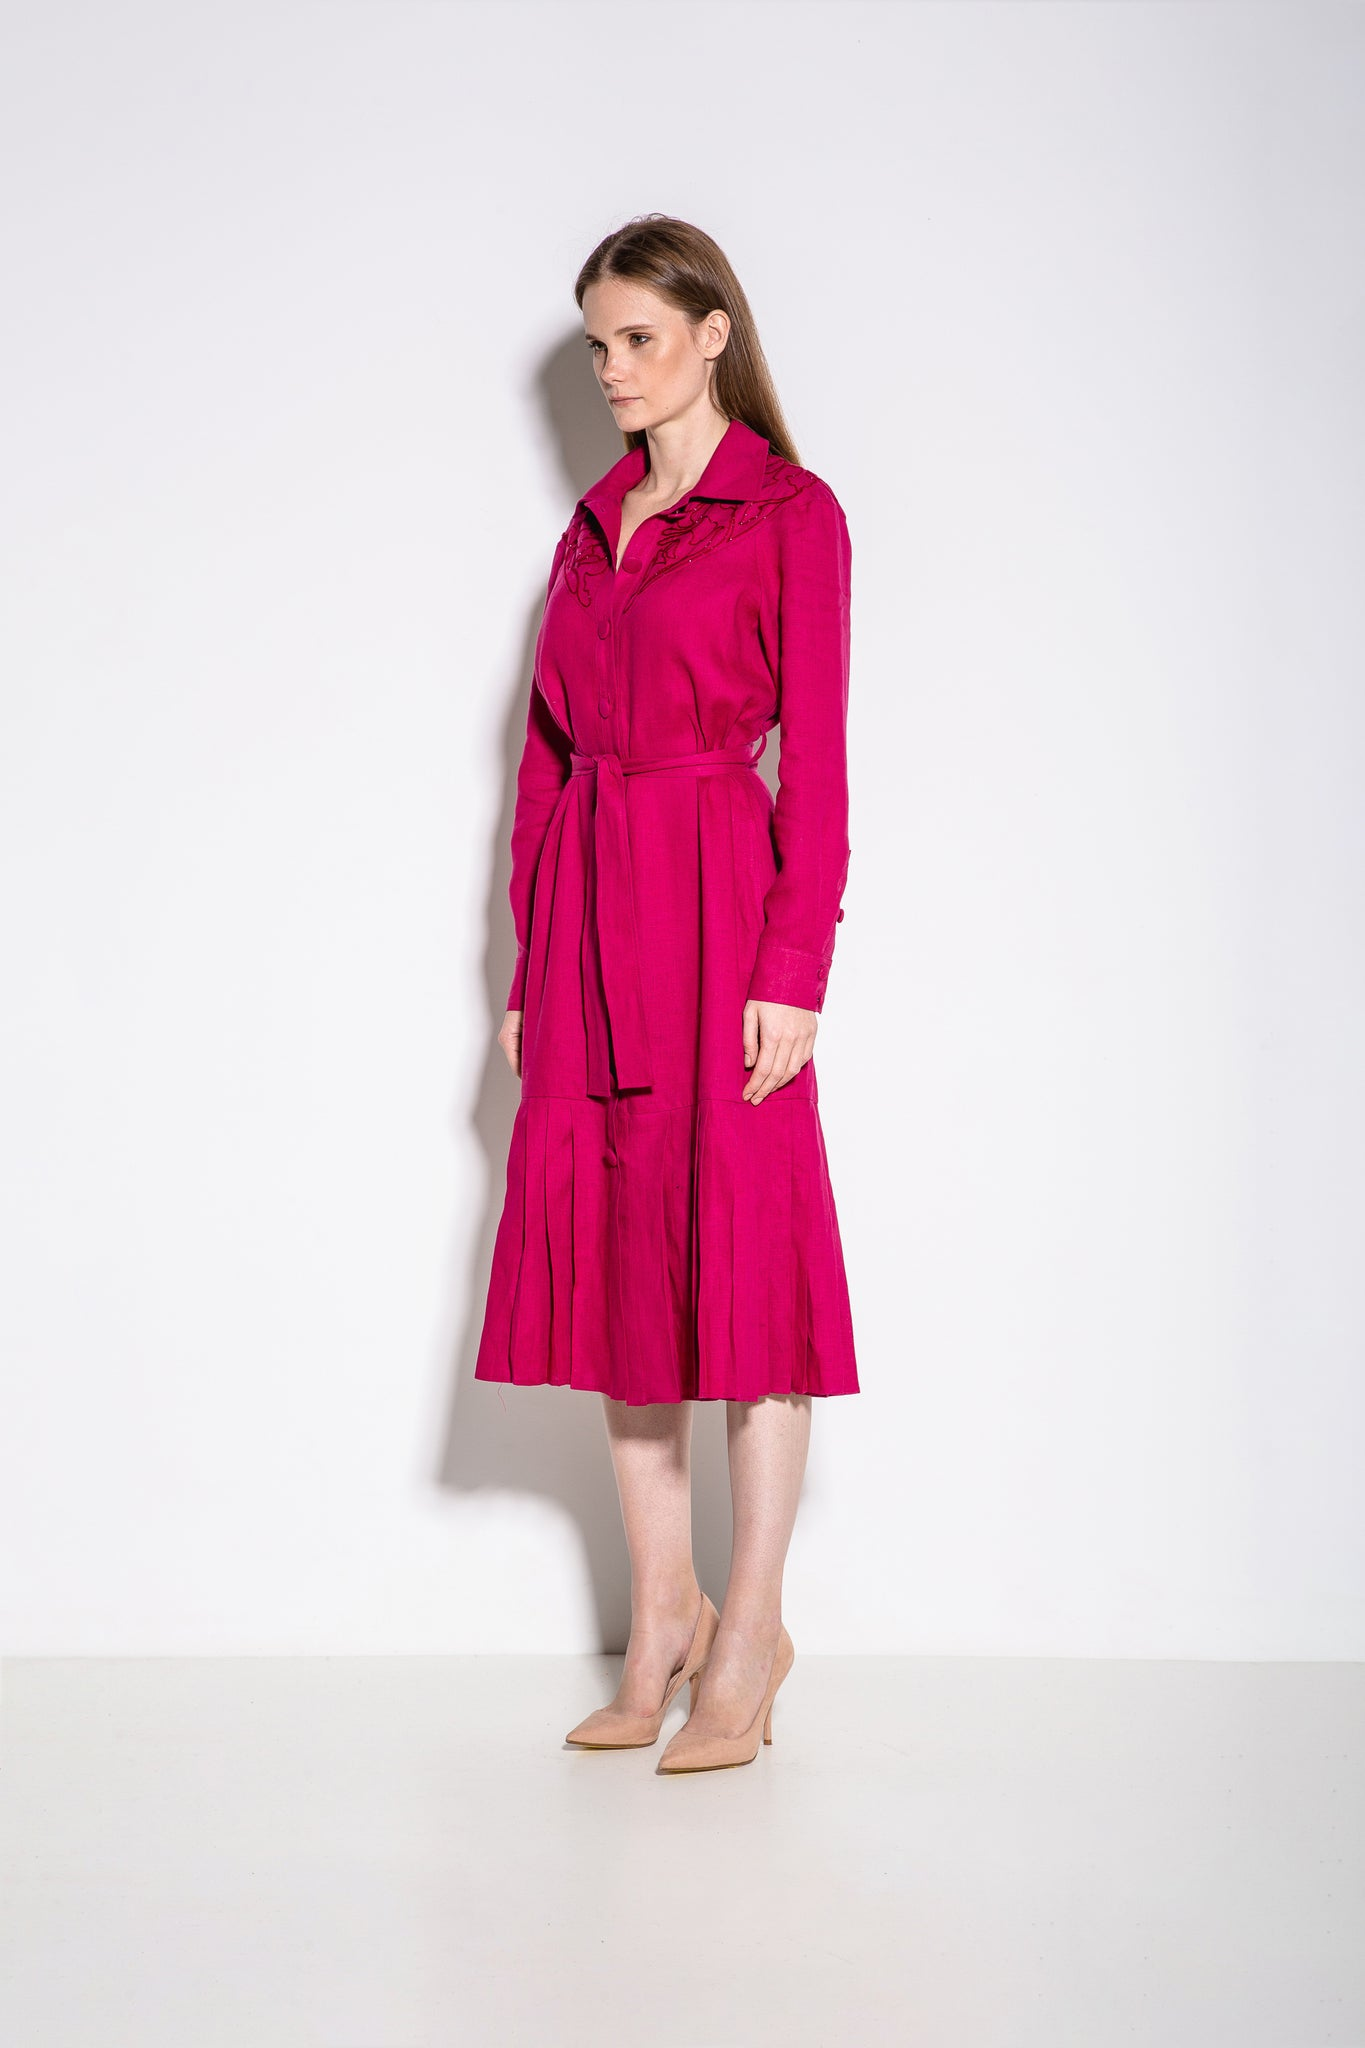 Western Midi Dress in Fuschia